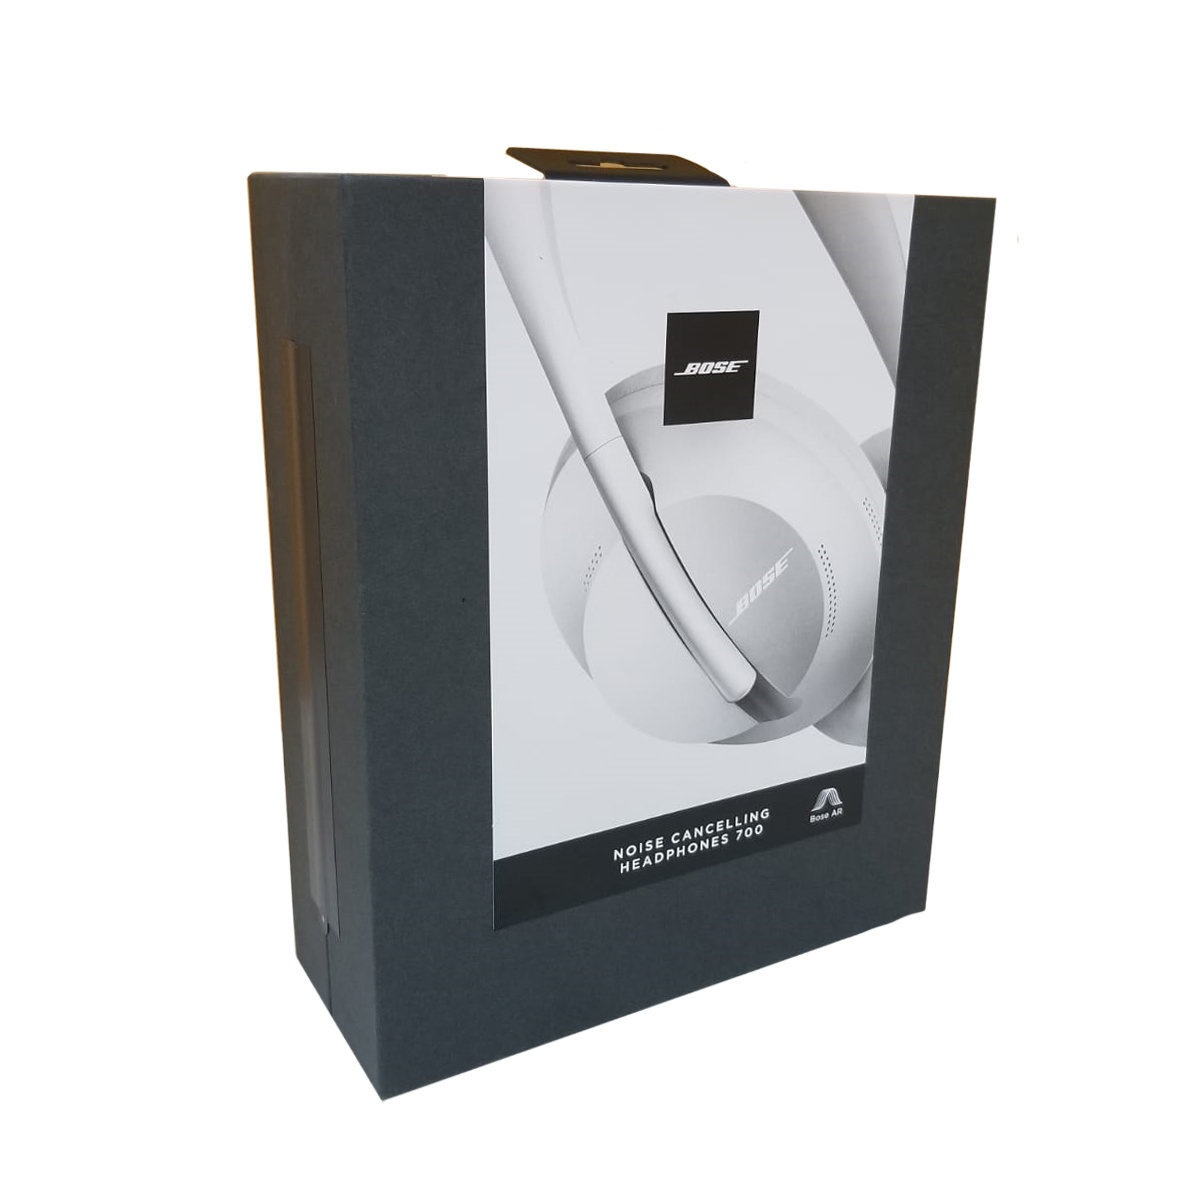 Bose Noise Cancelling Headphones 700 (Luxe Silver) - EXPANSYS Hong Kong